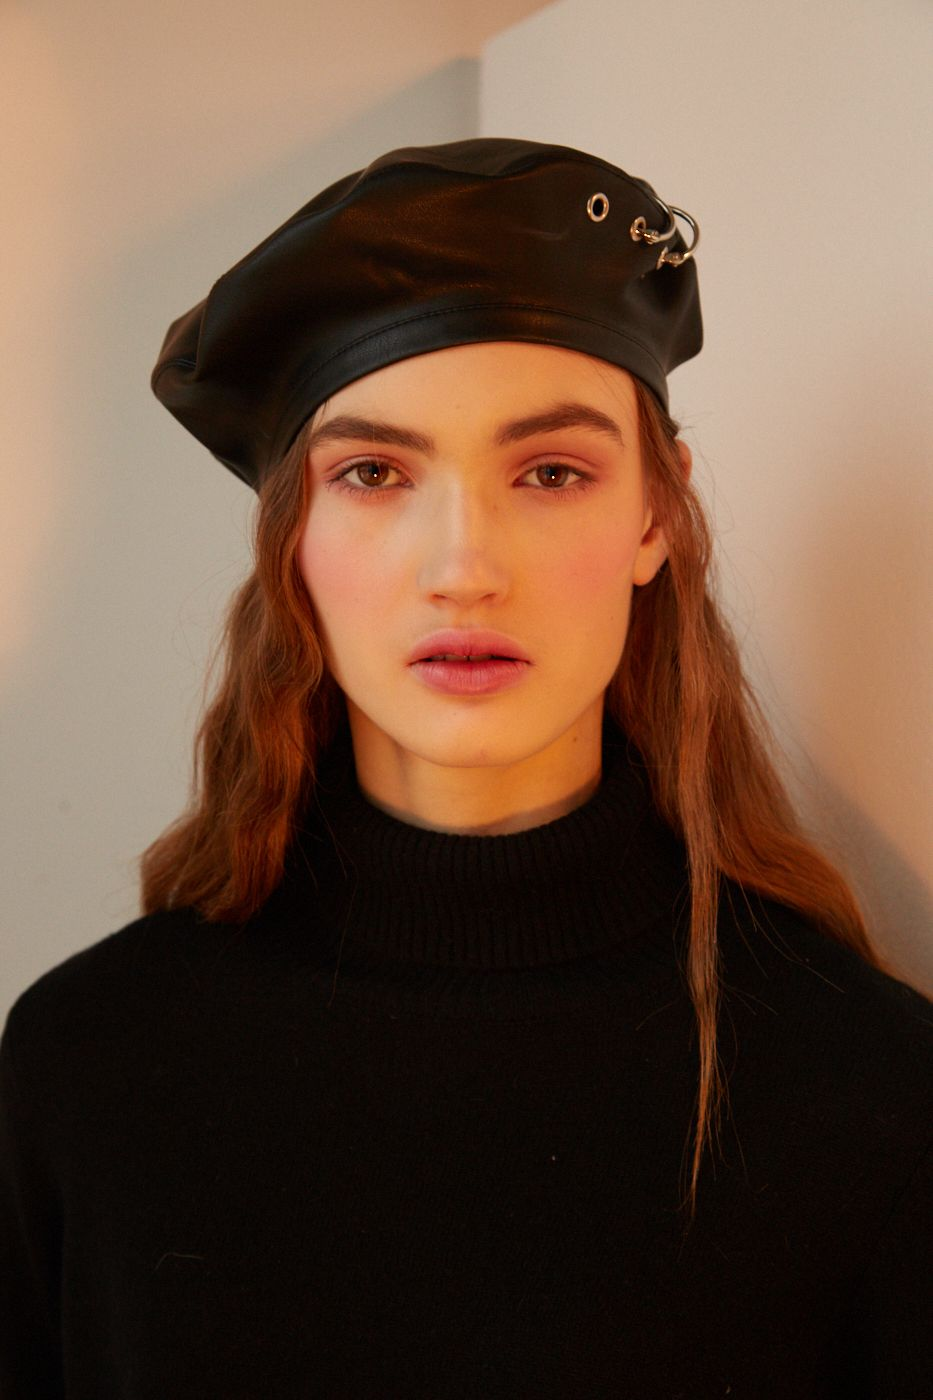 ZENIA Black eco leather beret with eyelets and piercings 3b7ba26bbeb7